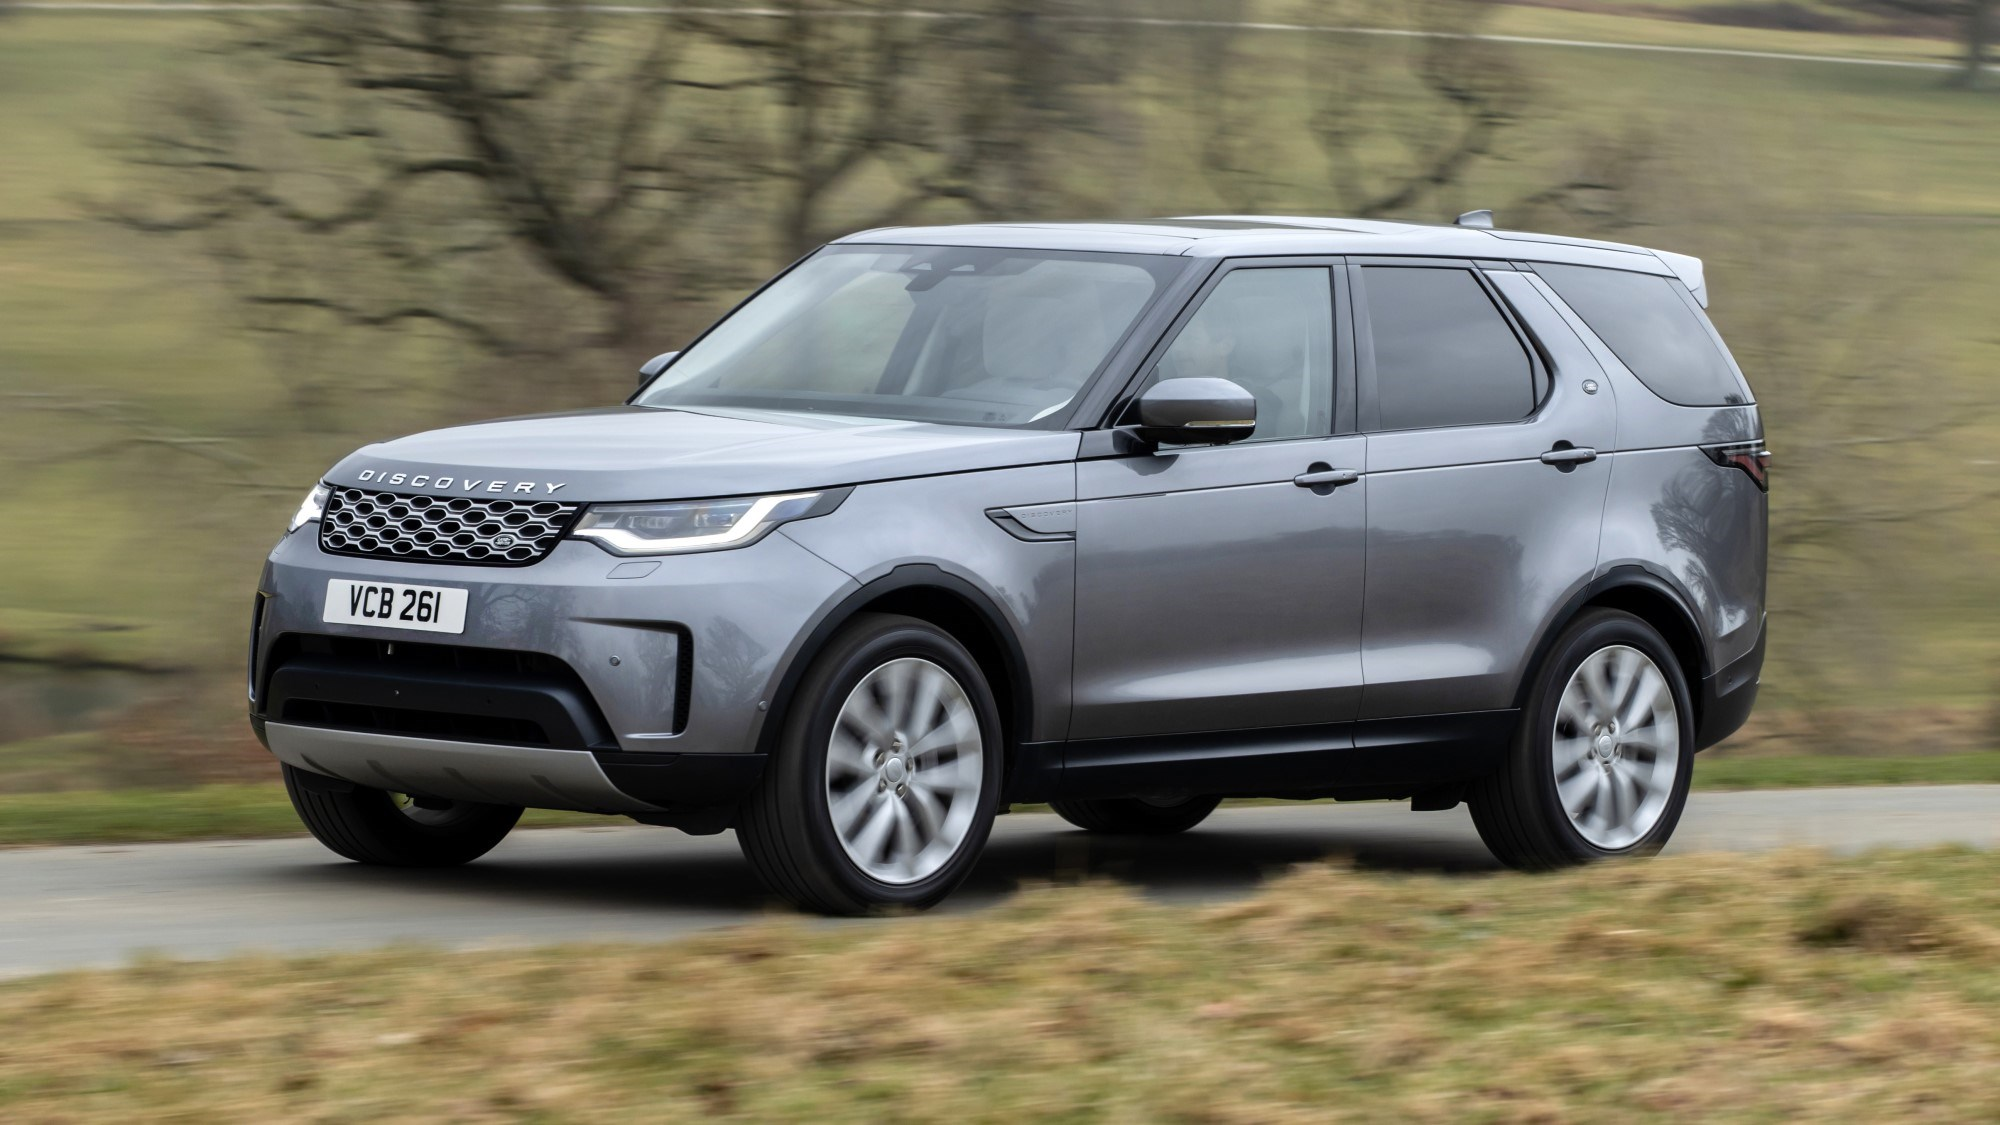 2021 Land Rover Discovery front three quarter